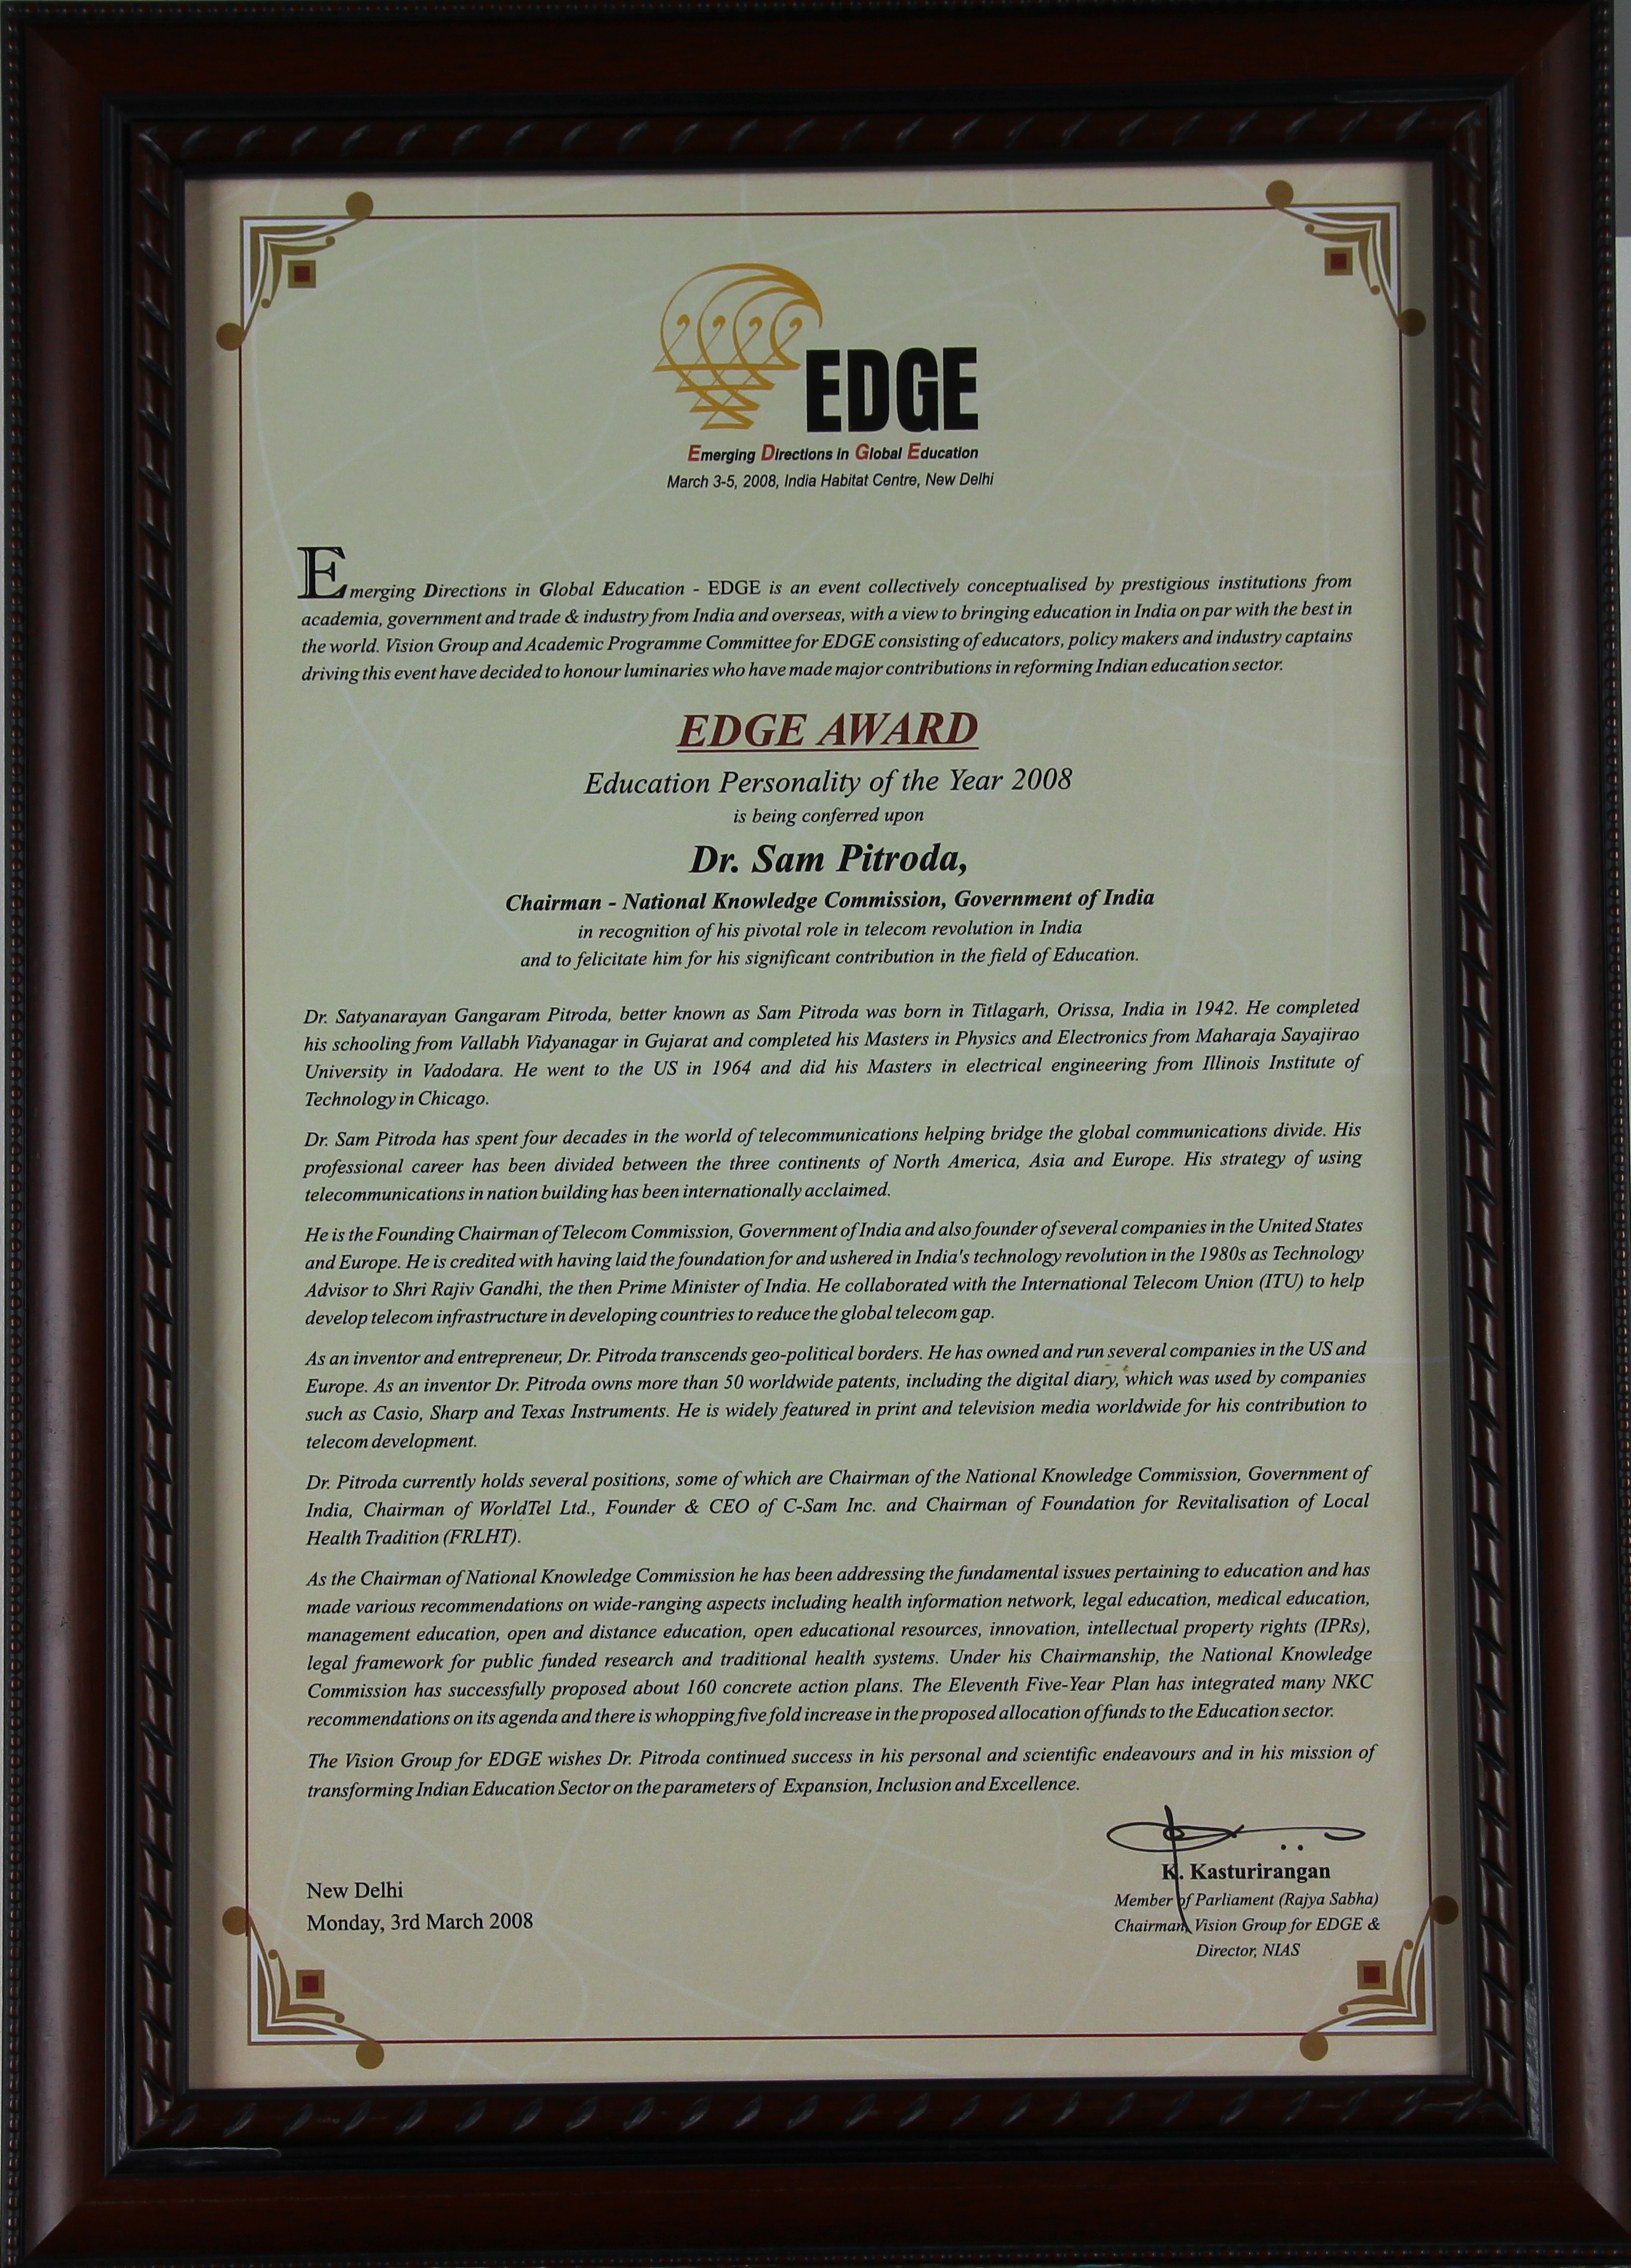 Education Personality of the Year, EDGE – Emerging Directions in Global Education, 2008